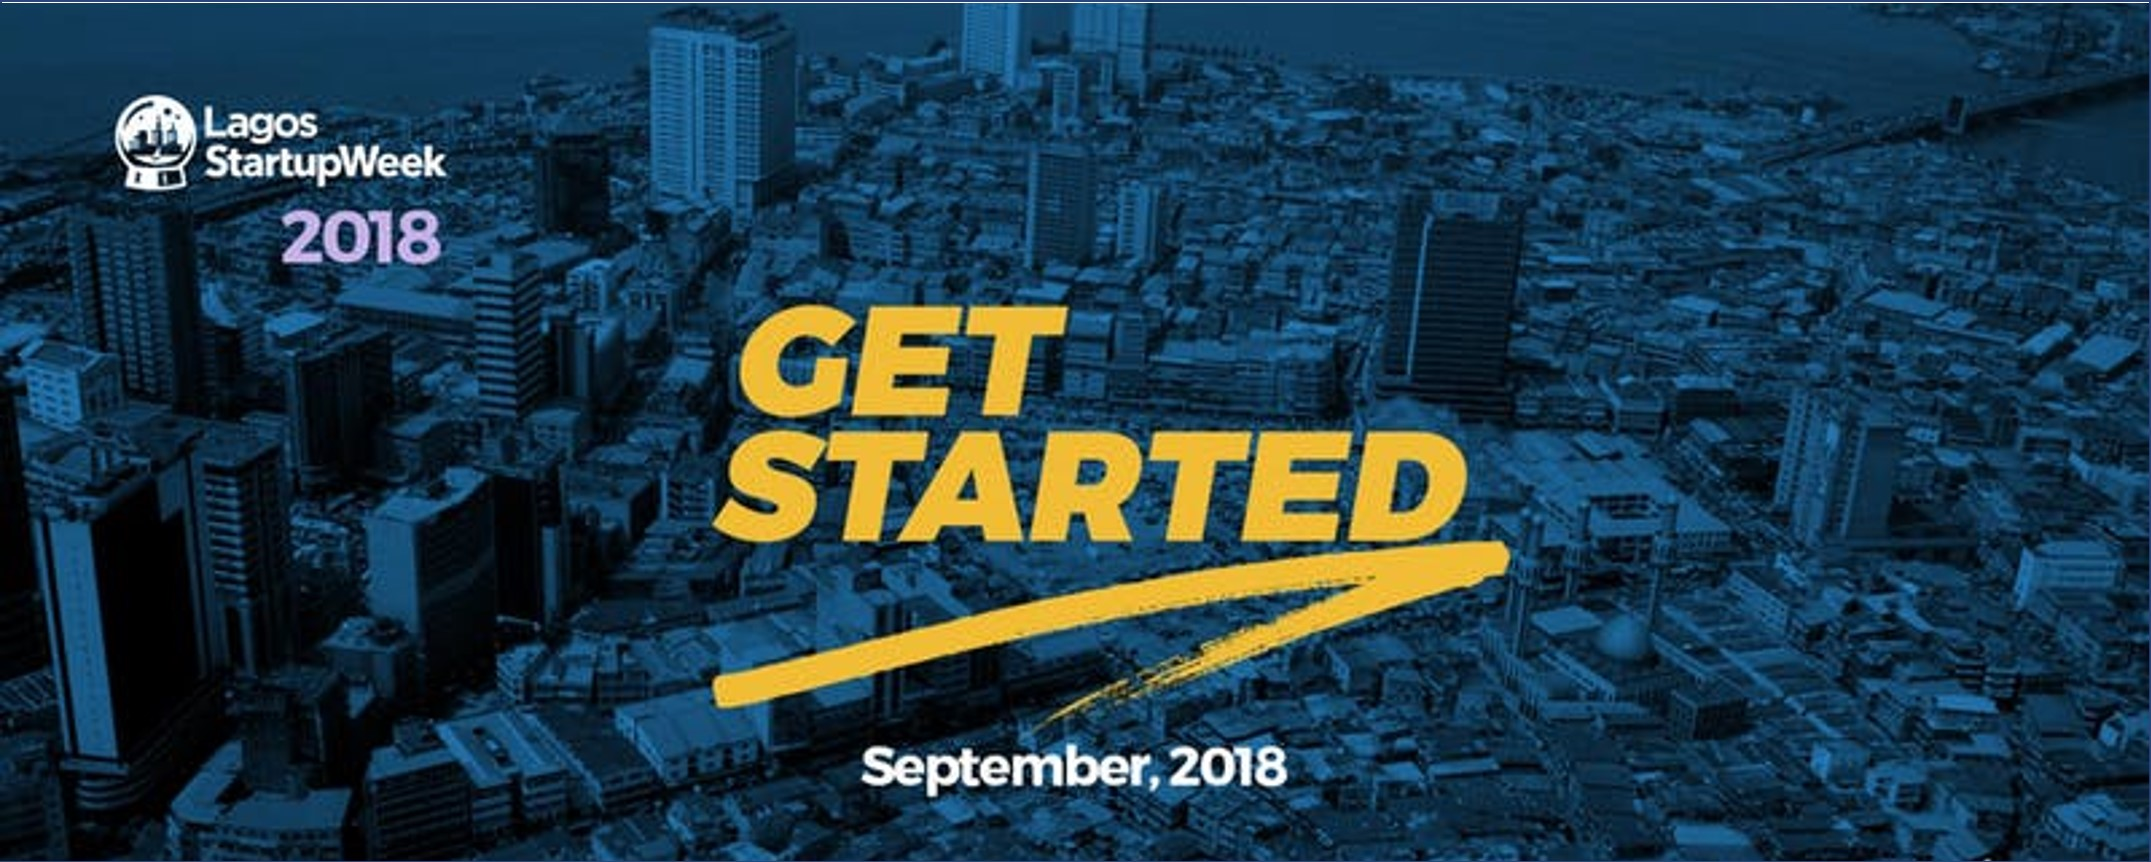 Prime Startups - Lagos Startup Week 2018 Movemeback African event cover image